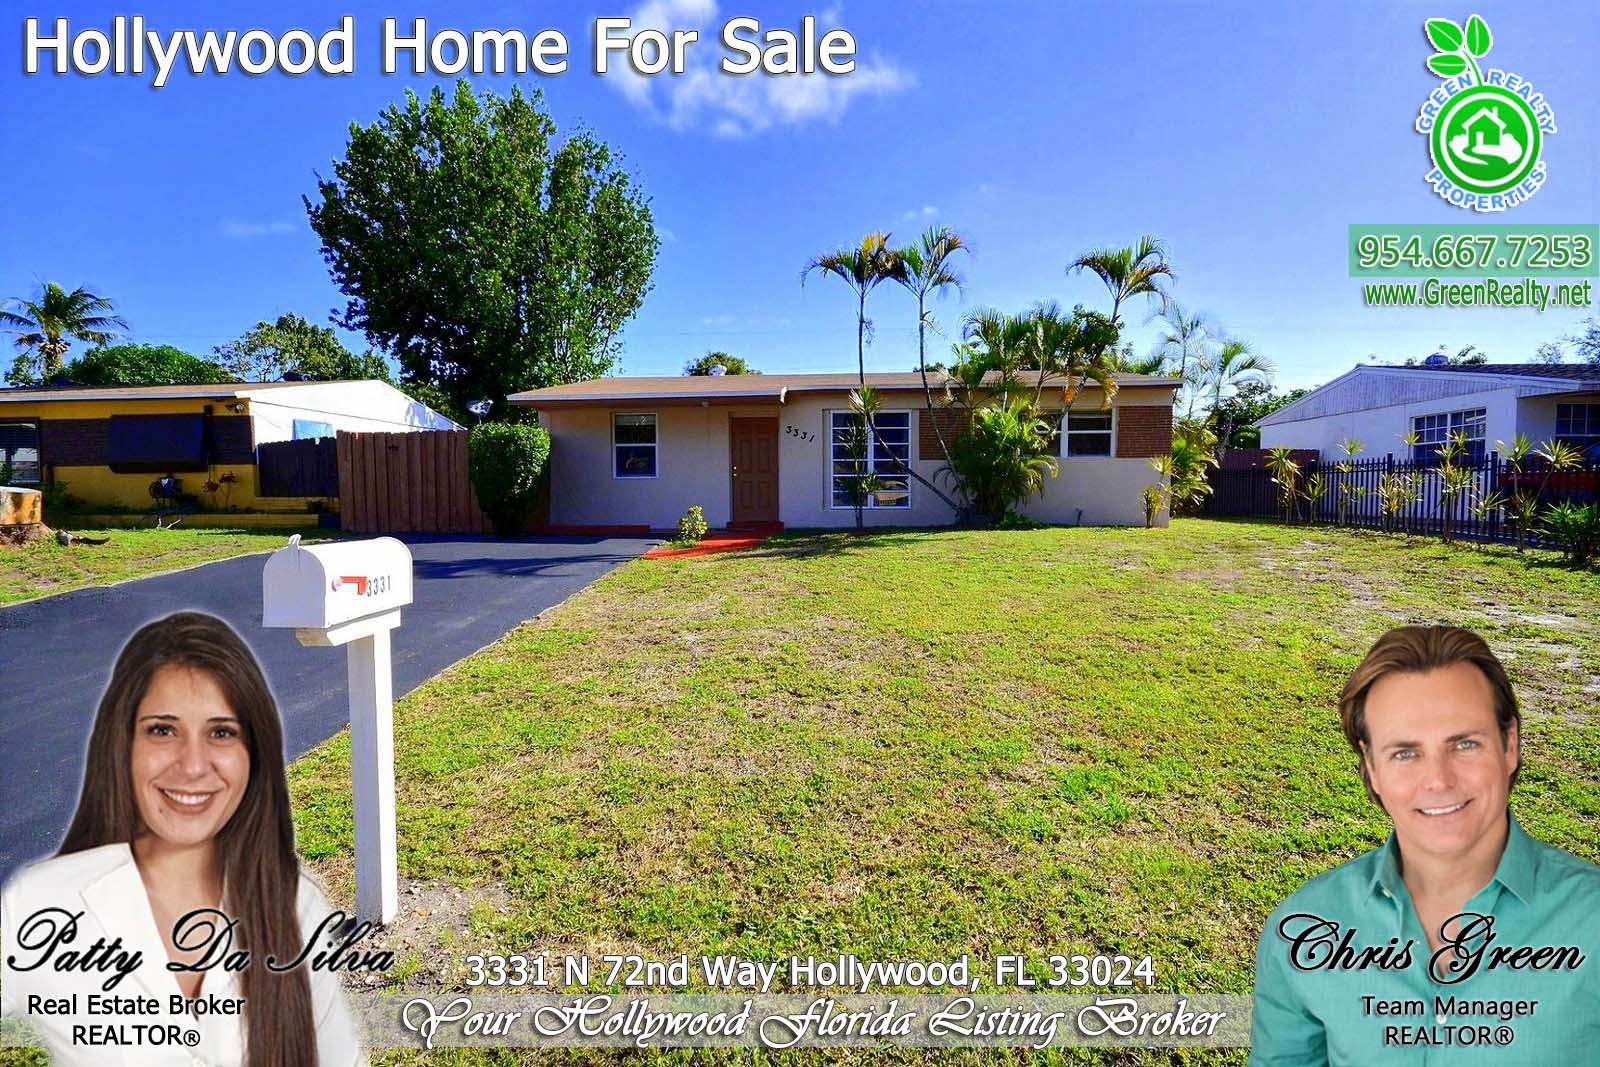 21 Homes For Sale in Hollywood Florida (2)